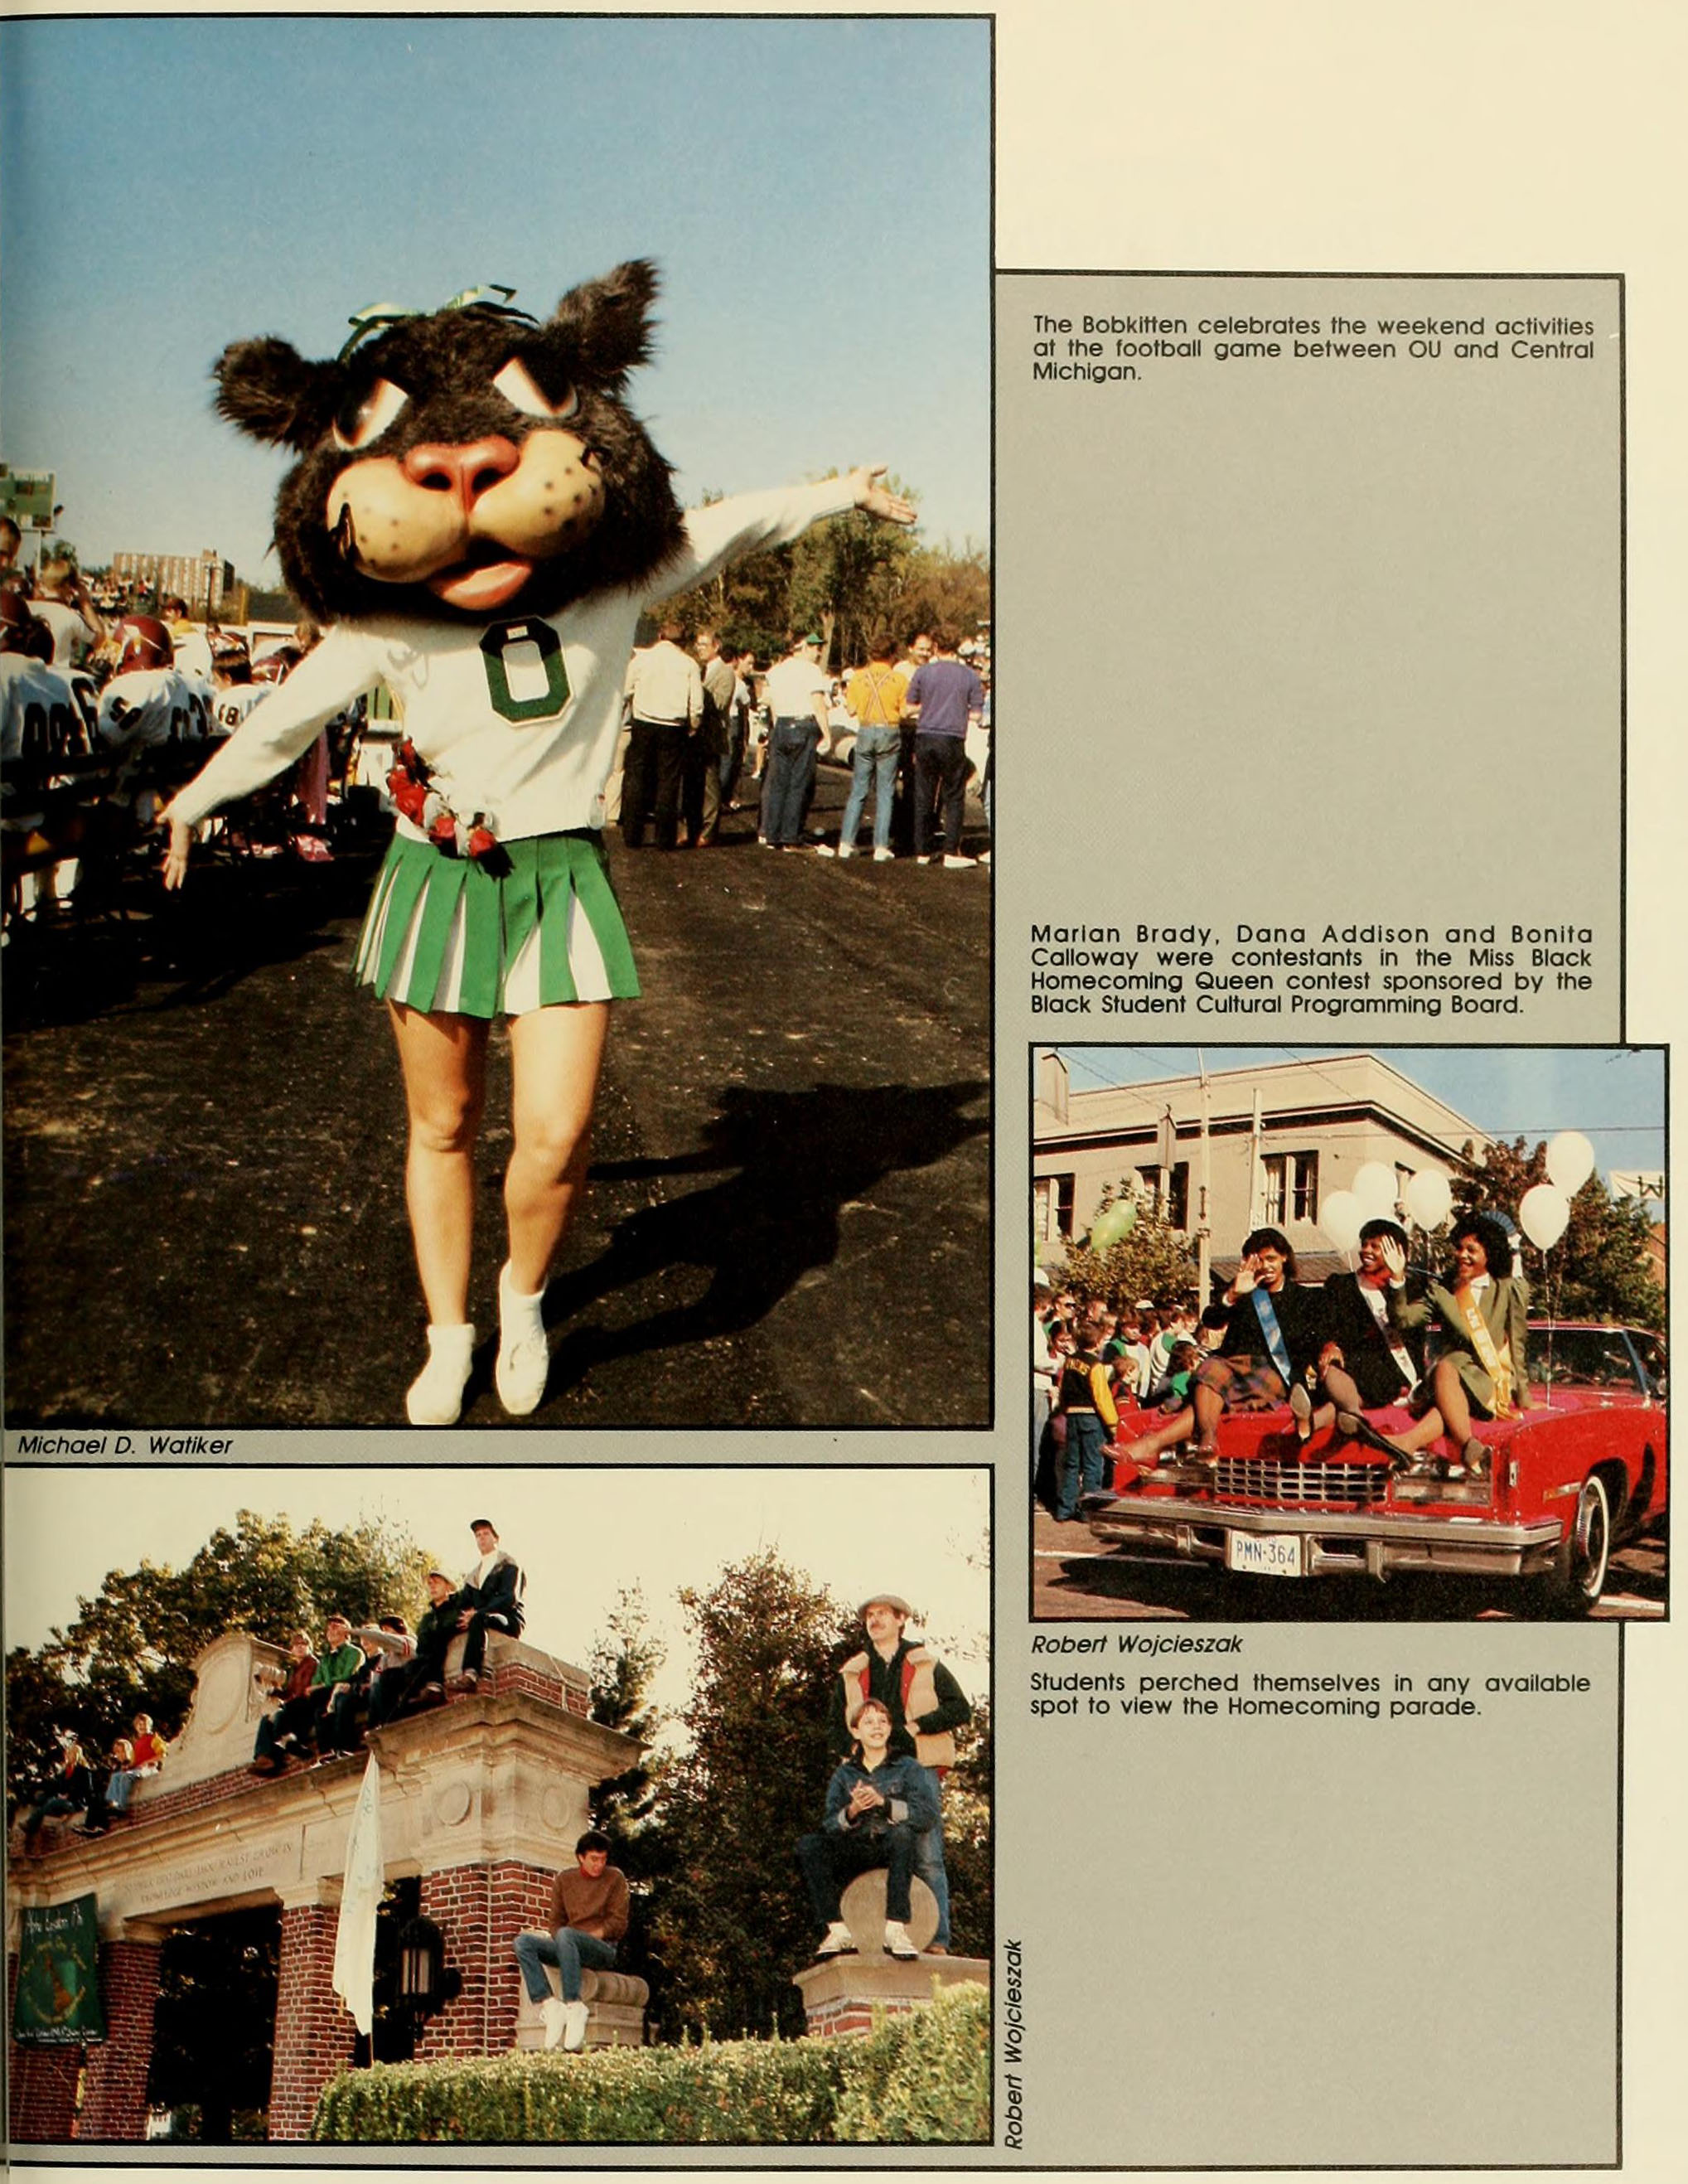 Athena yearbook page, 1984. Homecoming 1983